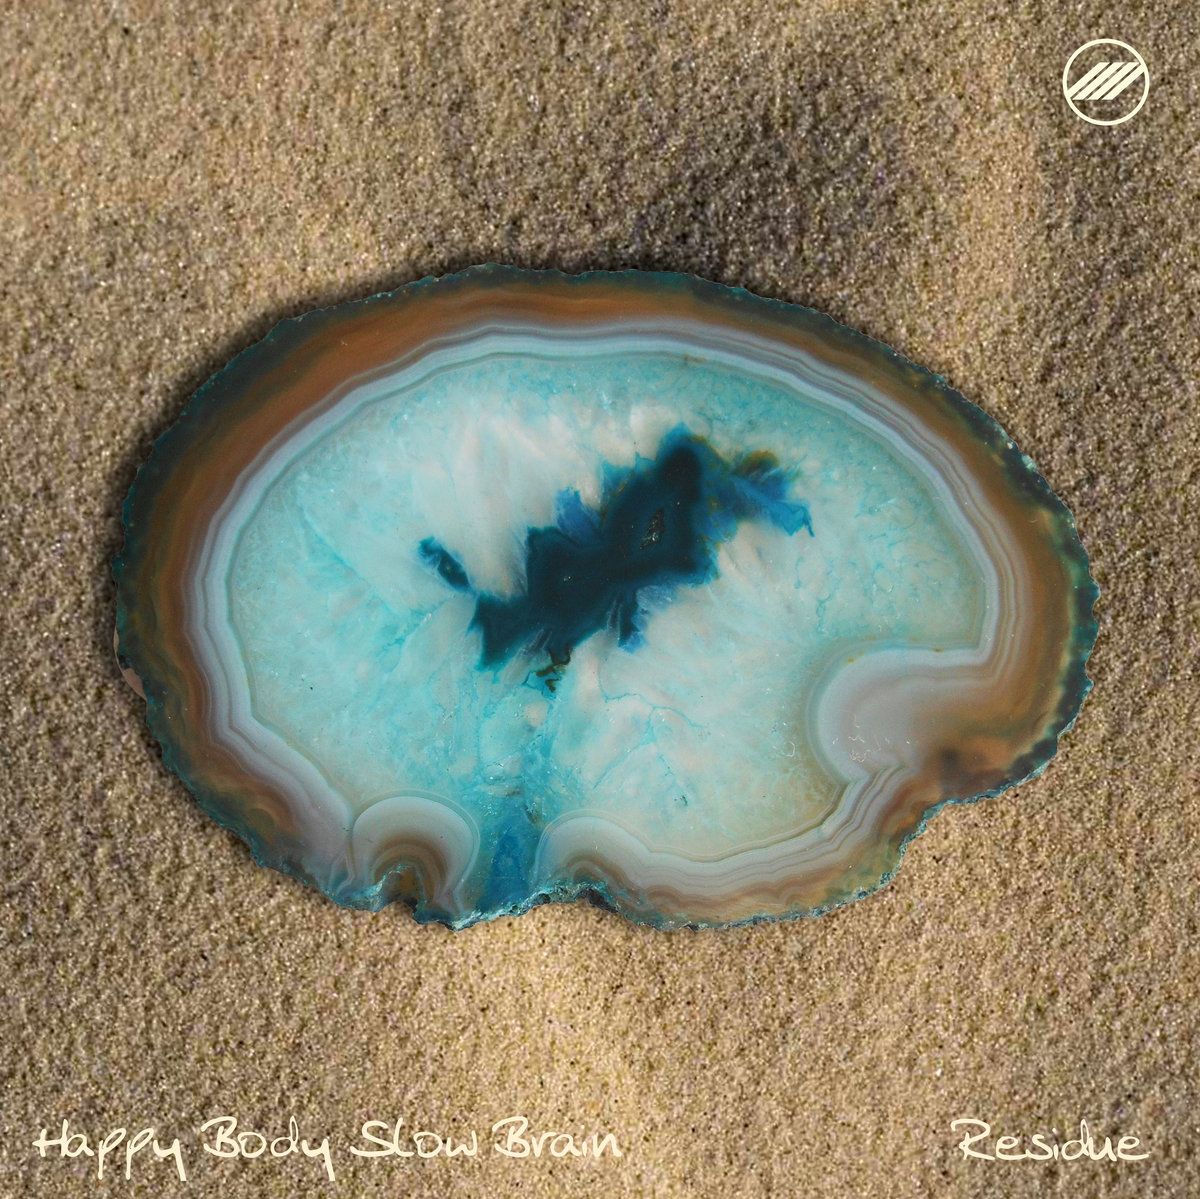 Residue by HAPPY BODY SLOW BRAIN